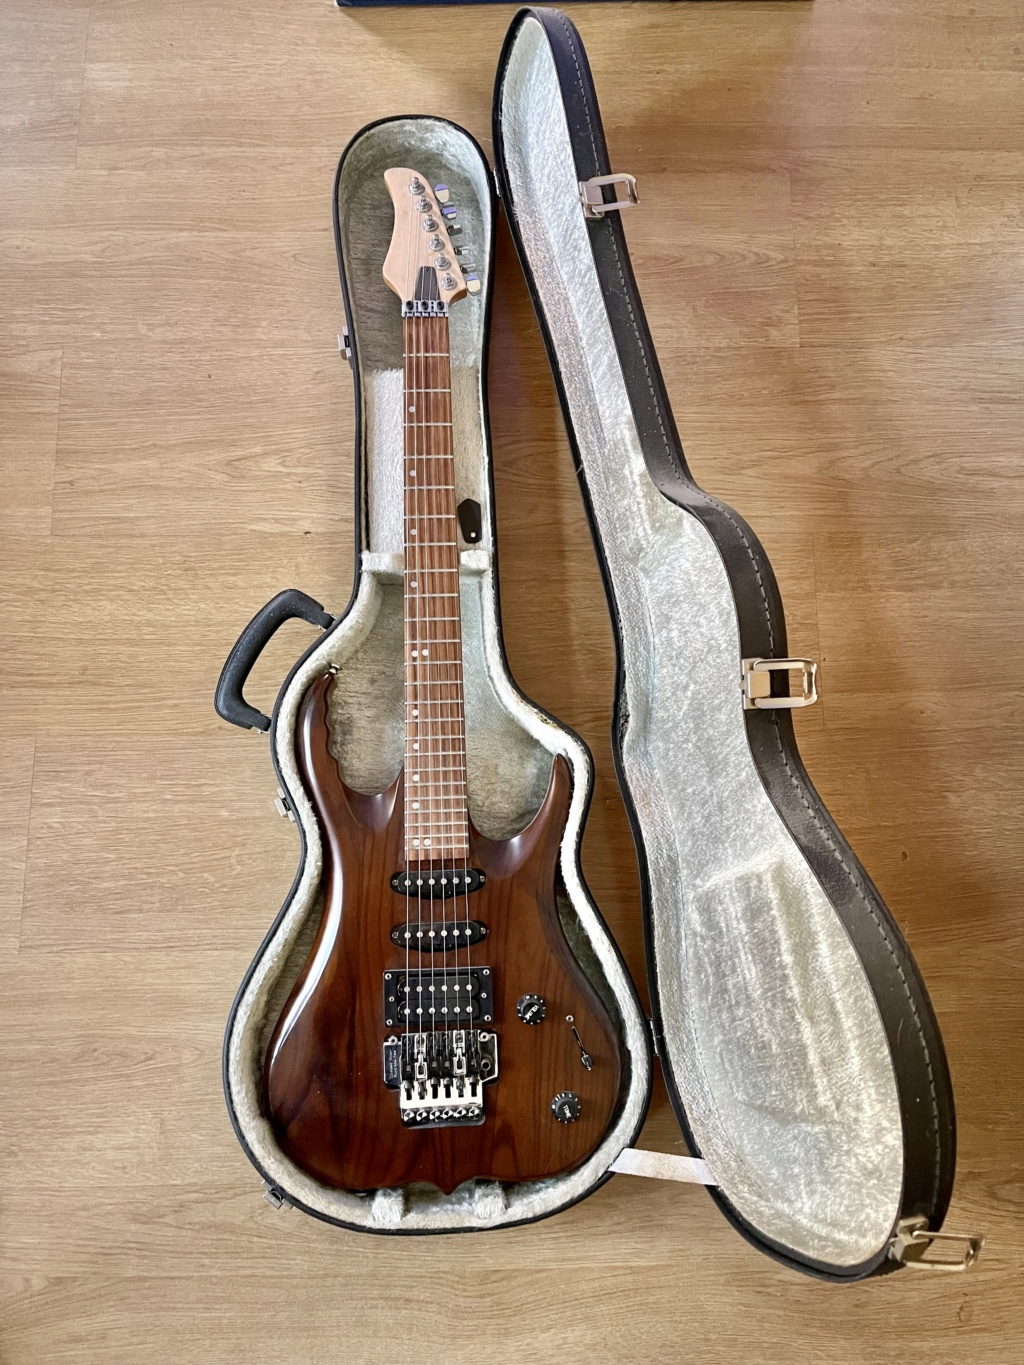 Which Westone model is this? C2af7f10